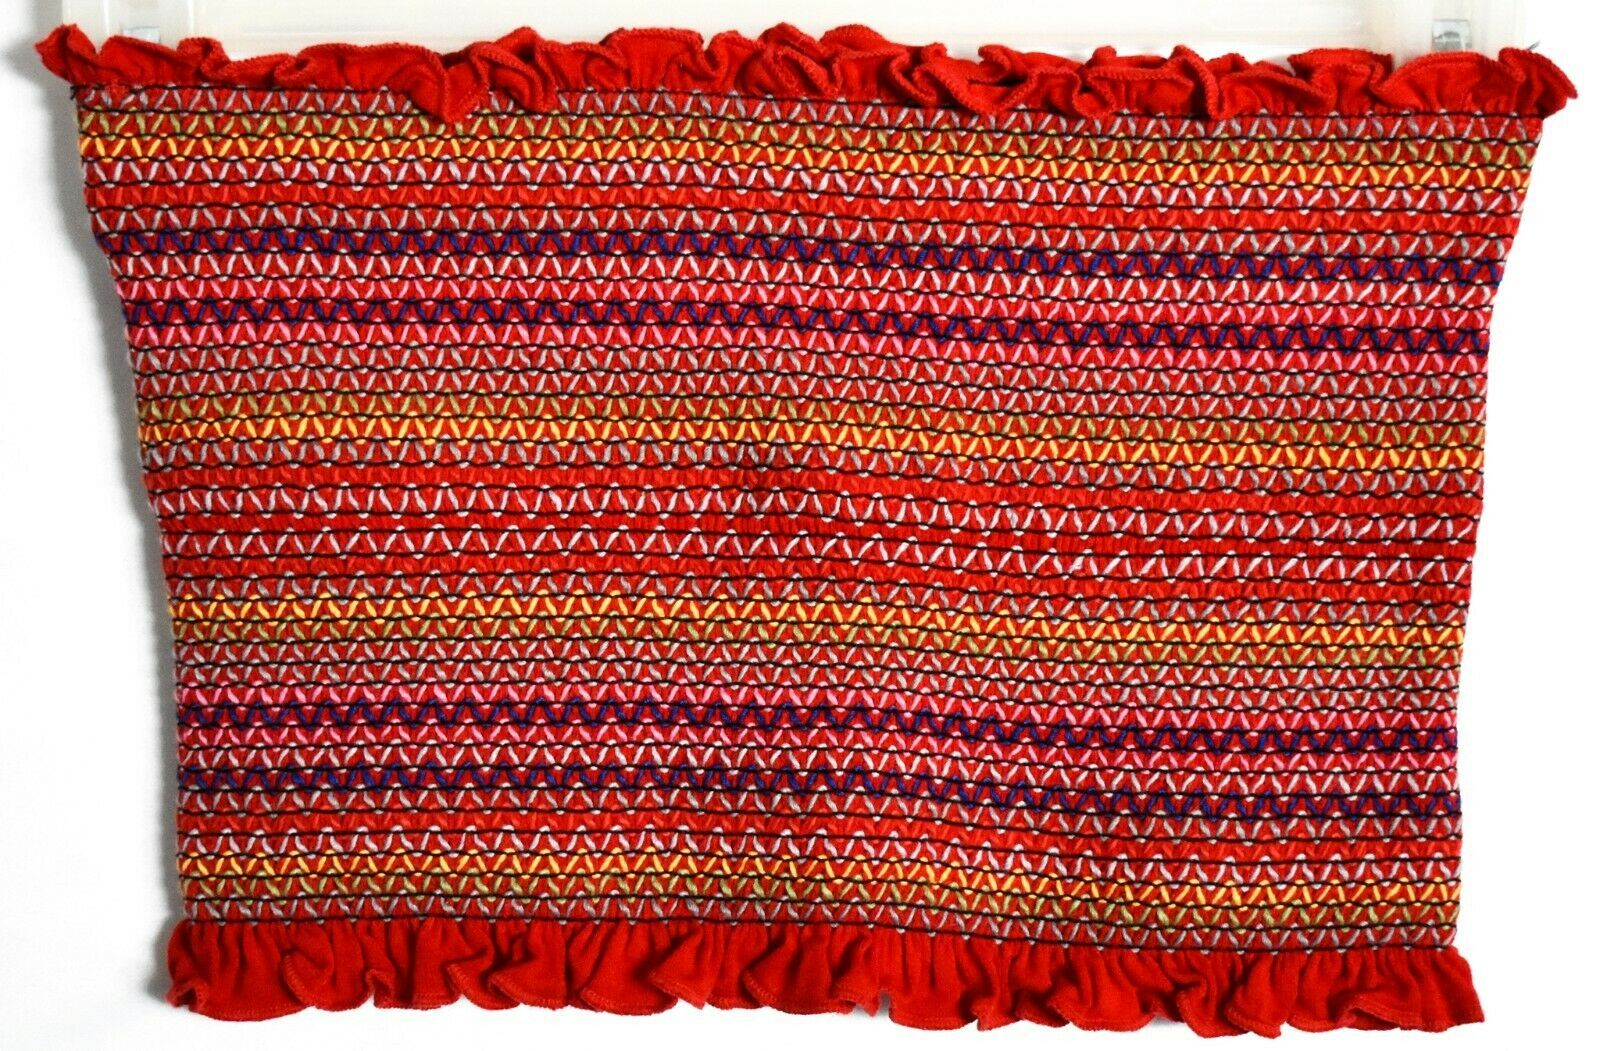 Forever 21 Red Ruffle Colorful ZigZag Striped Smocked Strapless Tube Top Sz S